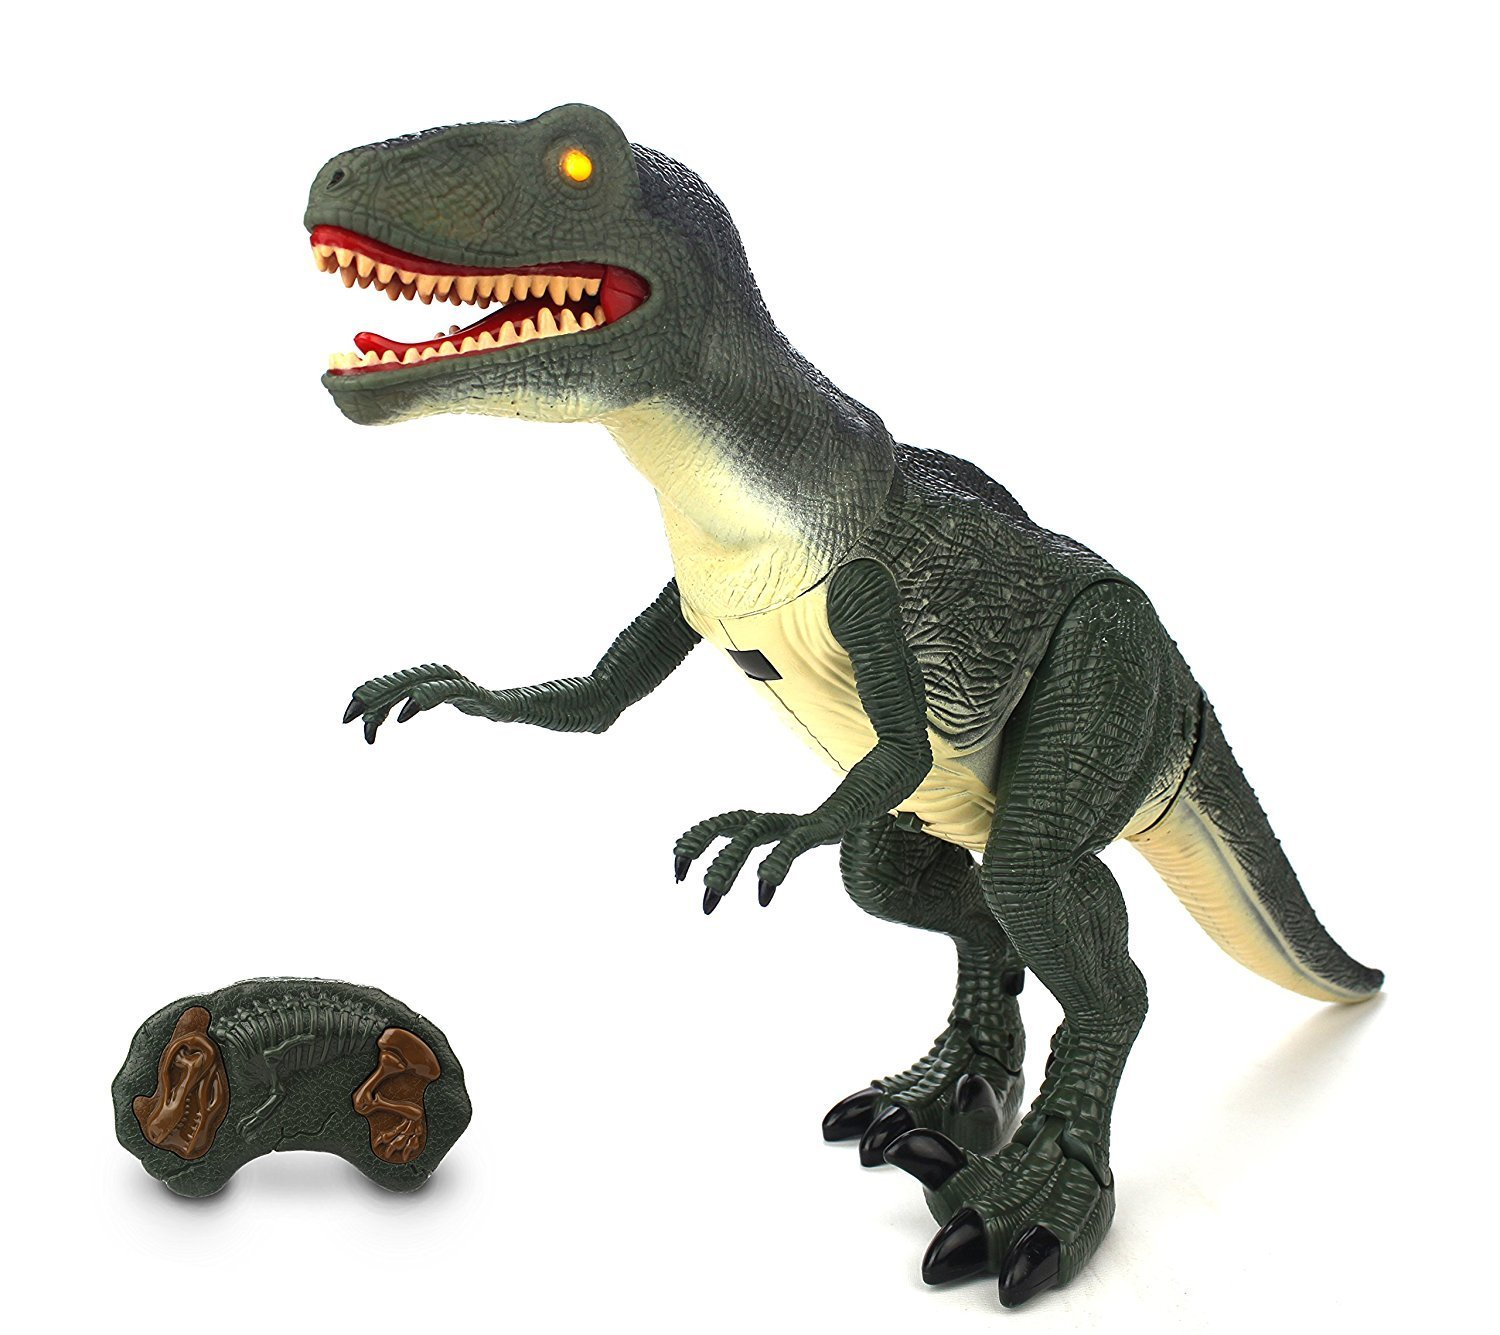 Dinosaur RC Battery Operated Toy Velociraptor Figure w Shaking Head, Remote Controlled RC,... by Velocity Toys